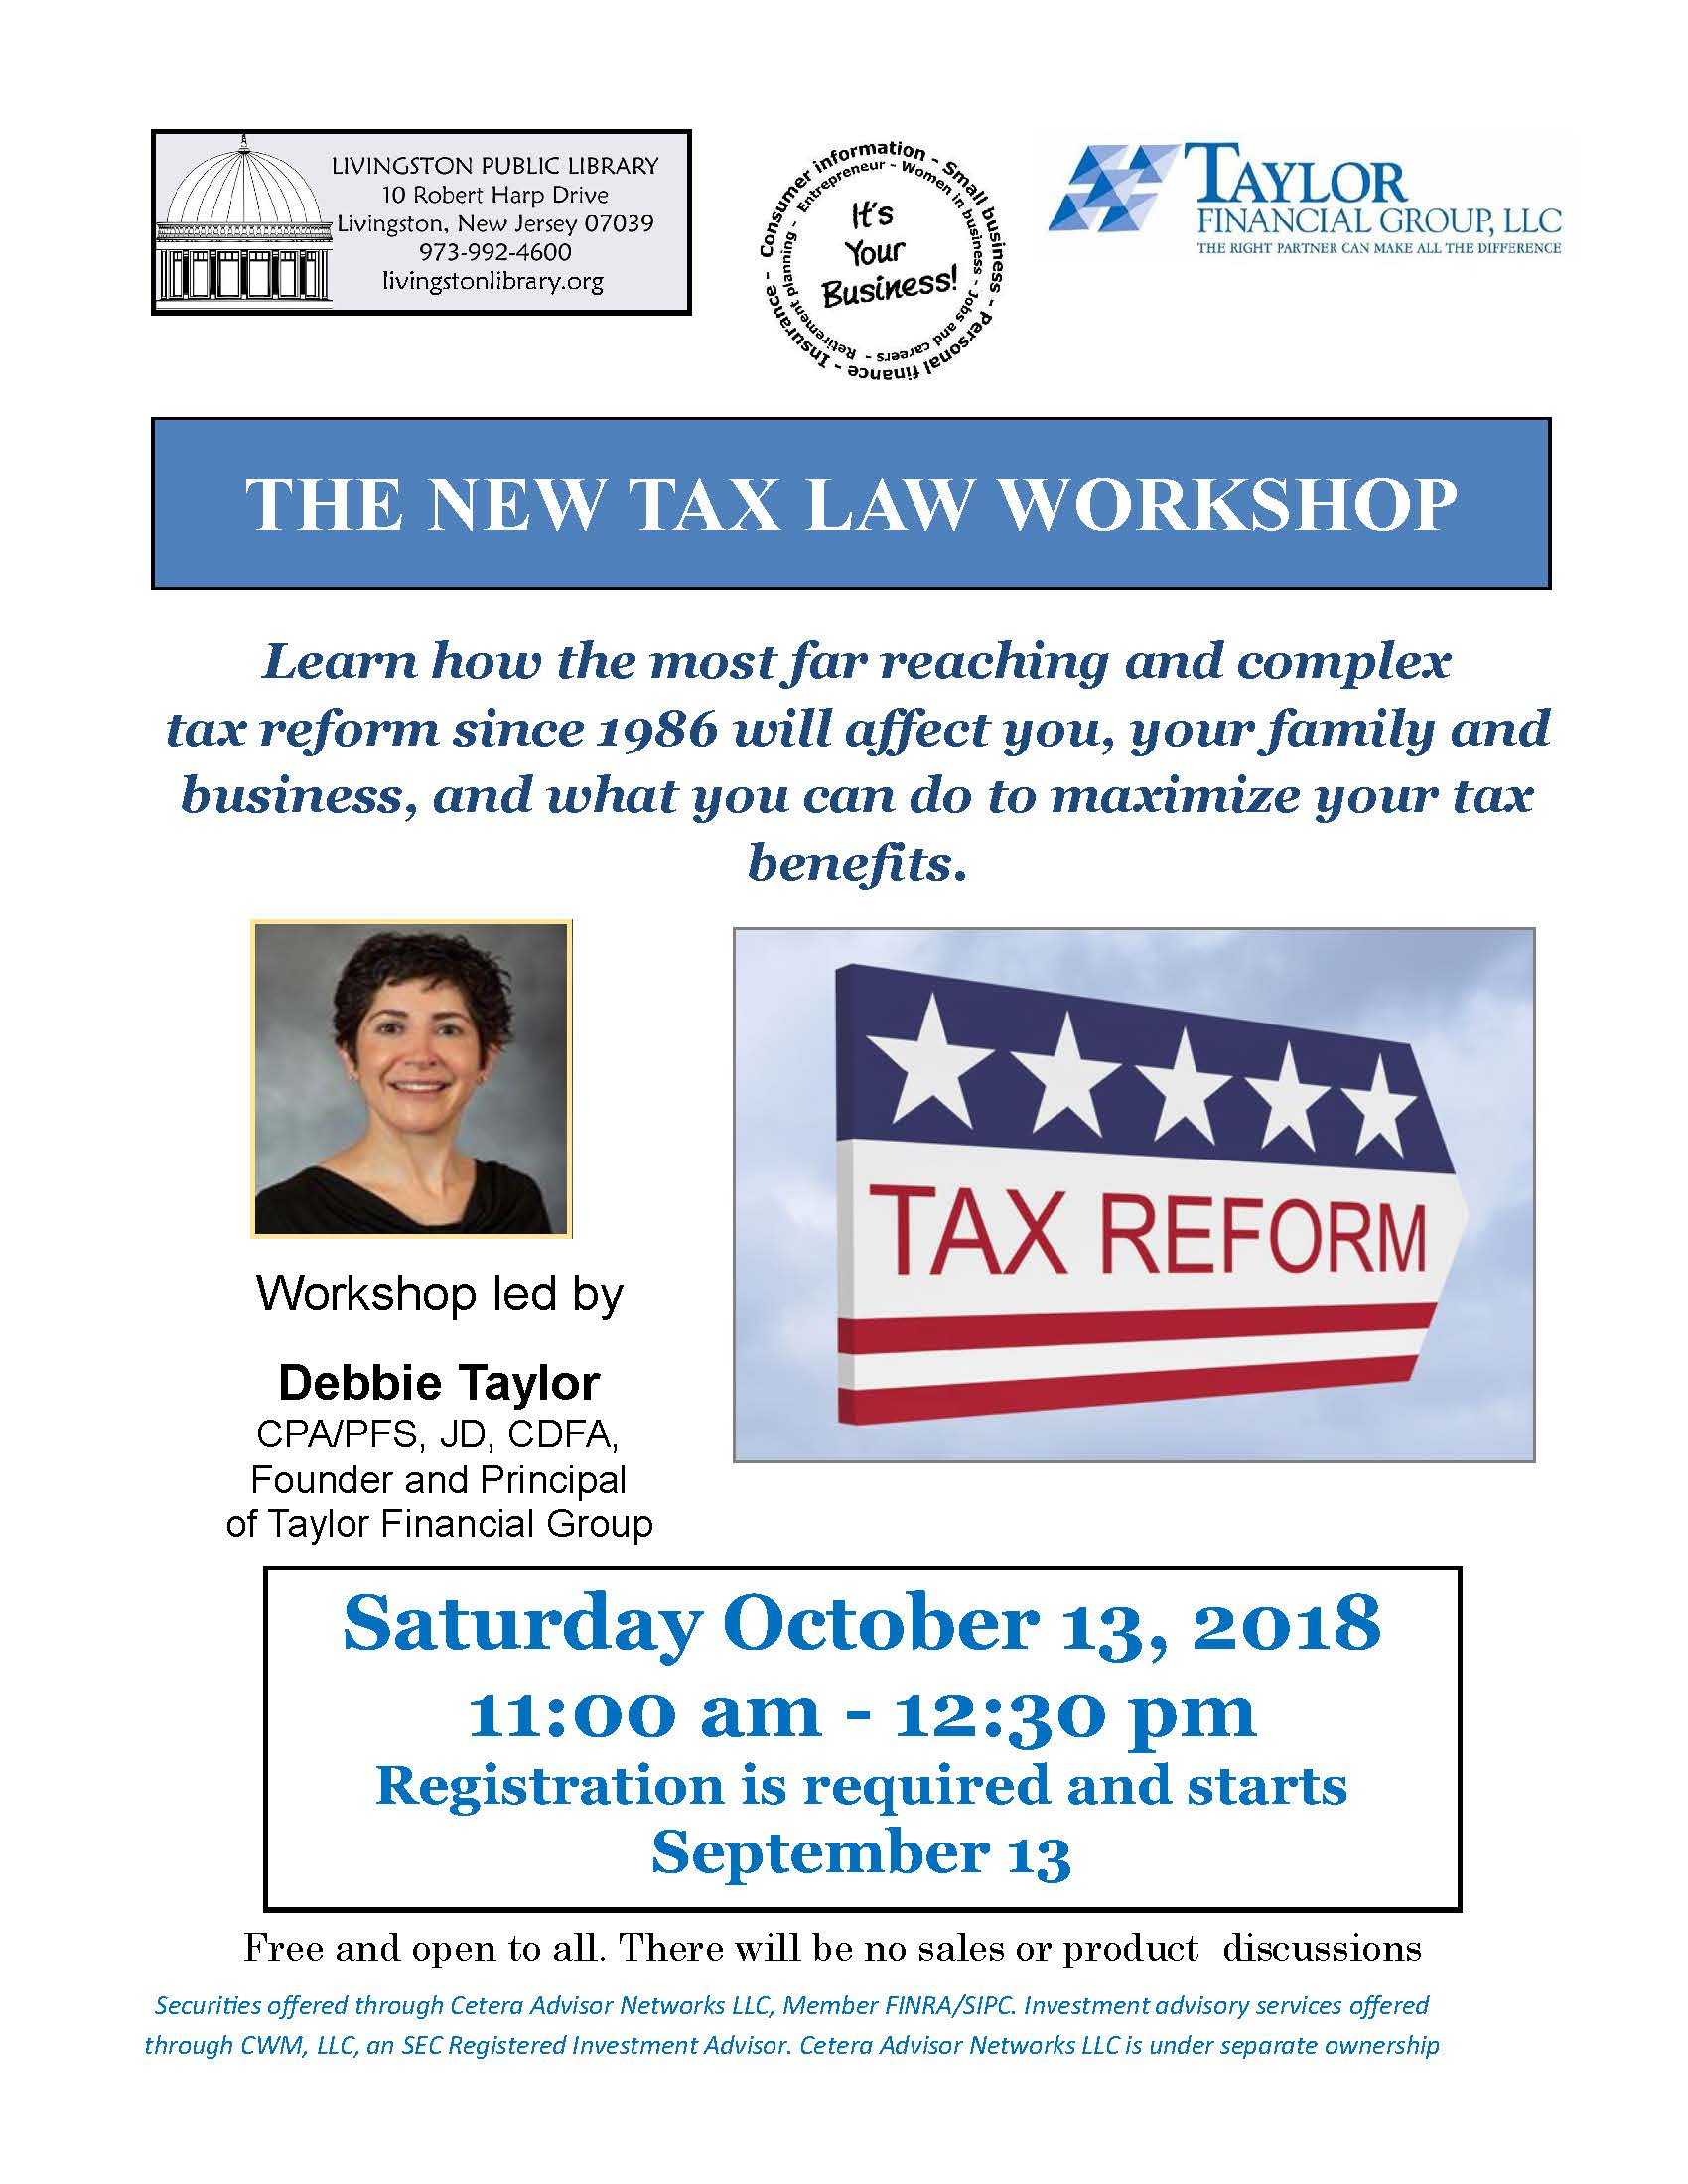 Flyer for New Tax Law Workshop @ Livingston Public Library on 10/13/18. Info @ livingstonlibrary.org